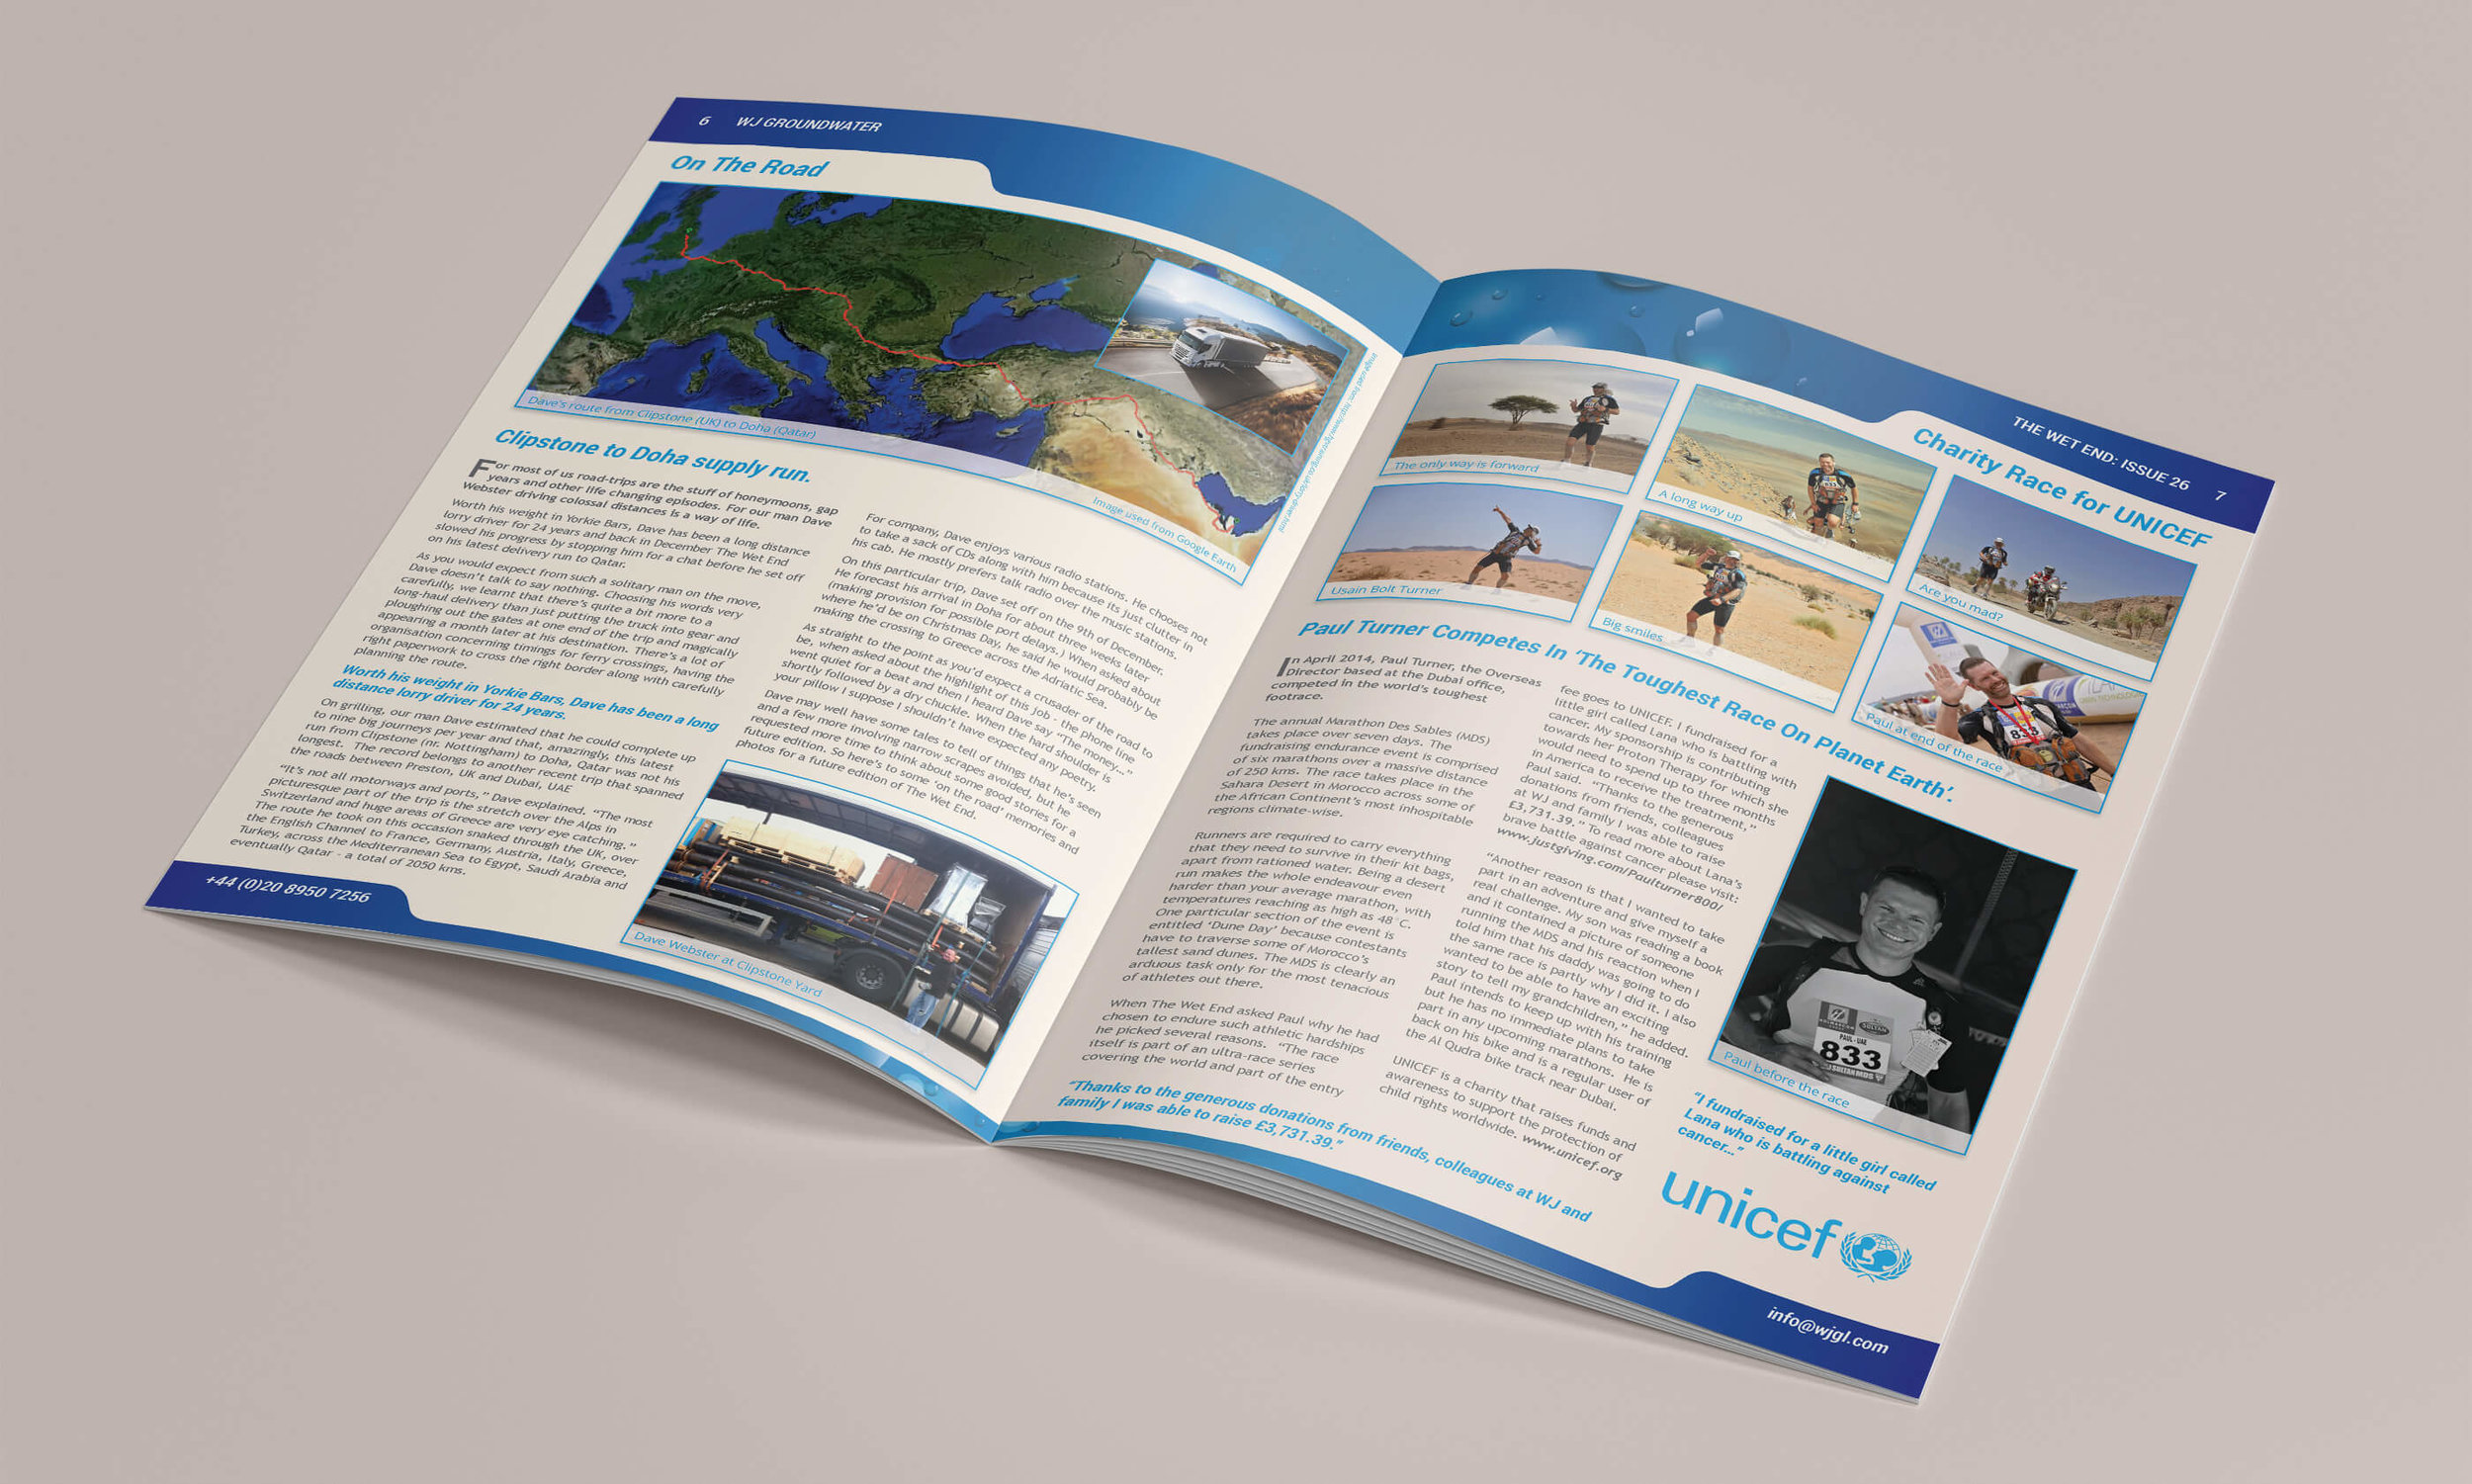 Issue 26 inside double-page spread